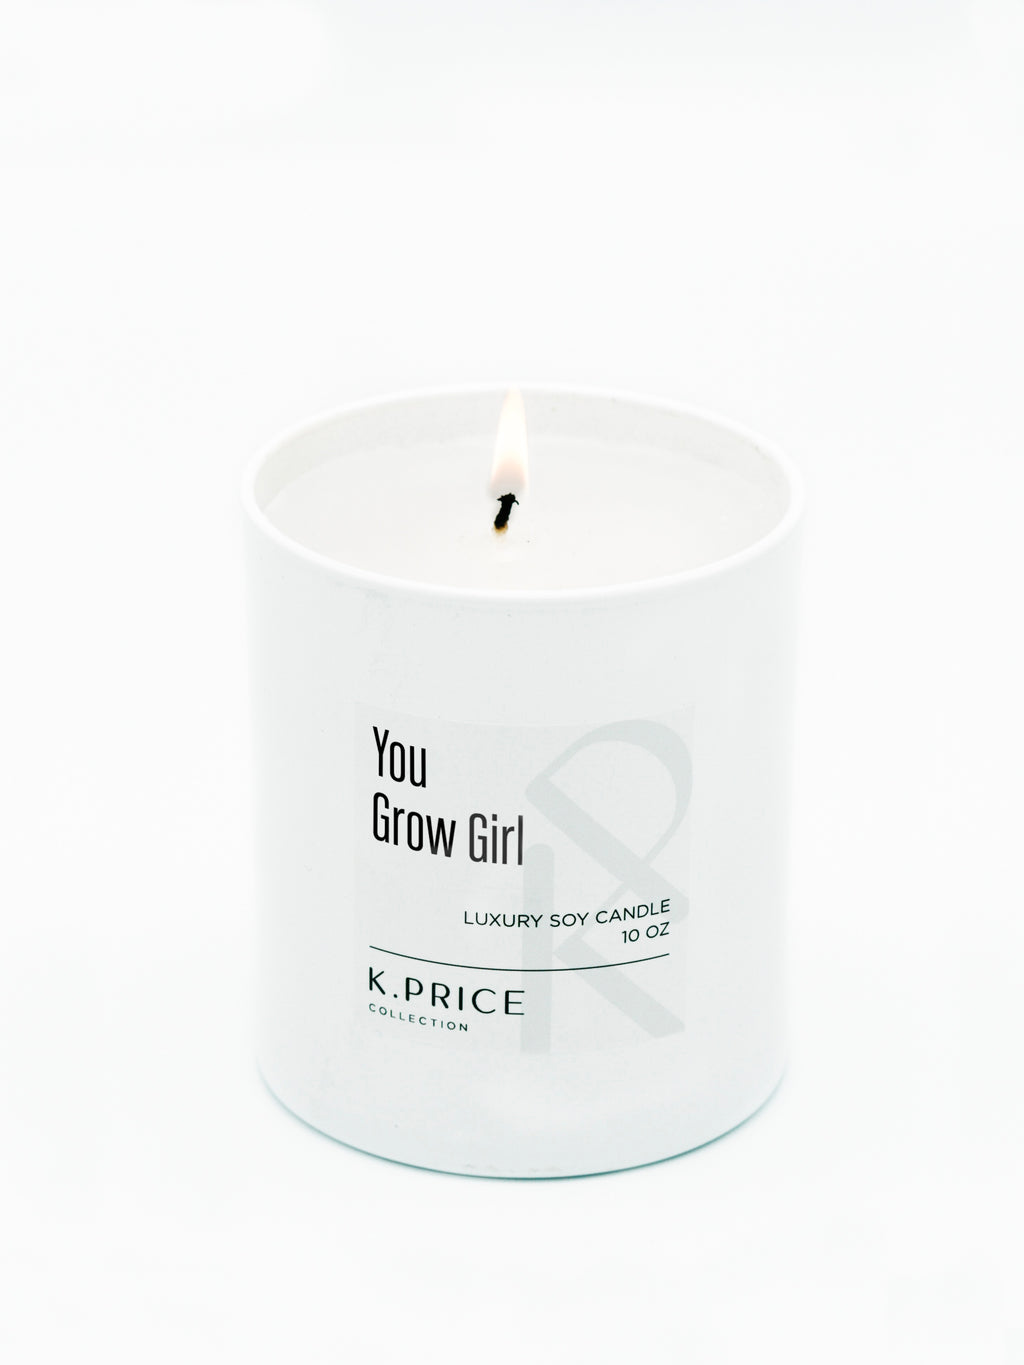 You Grow Girl - 10oz Soy Candle